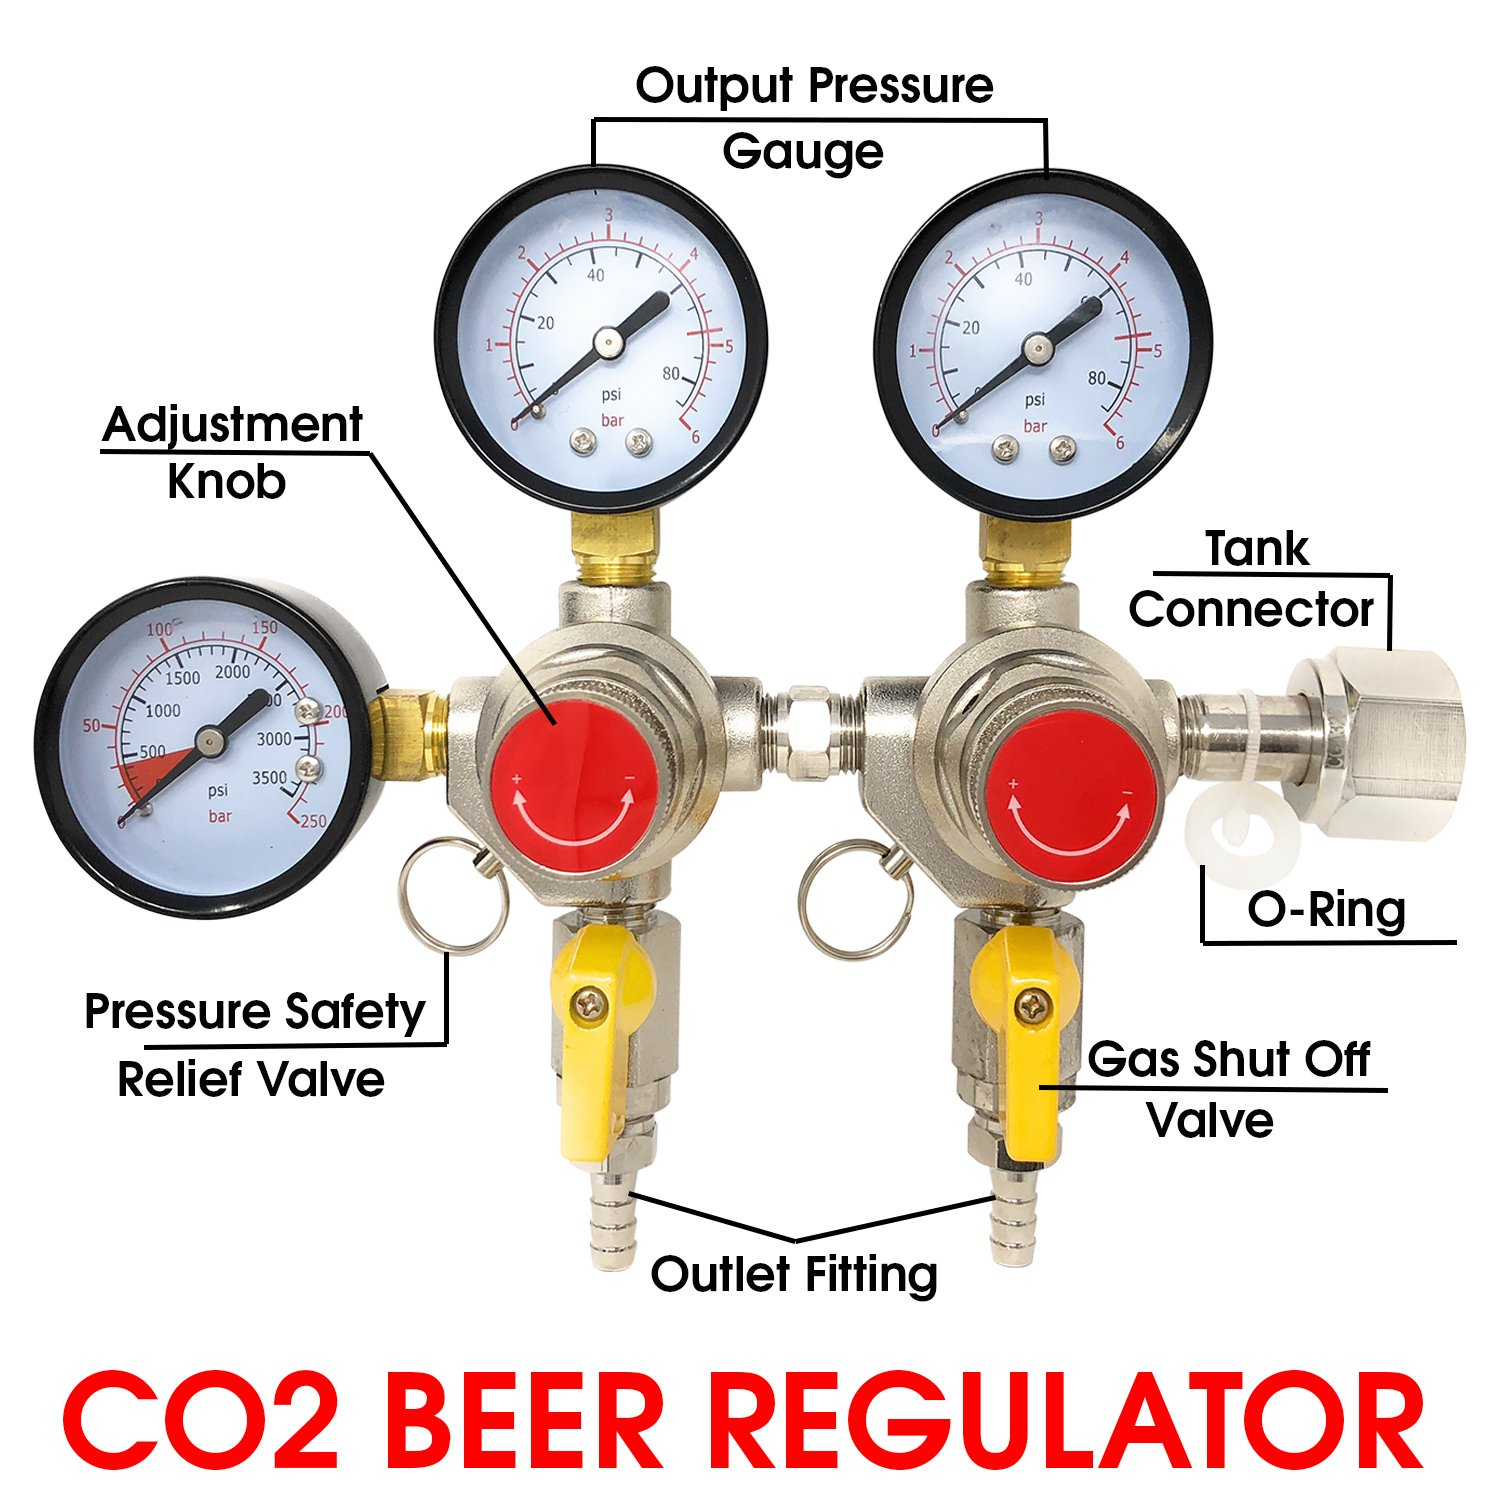 Co2 Beer Regulator Two Product Dual Pressure Kegerator Homebrew Heavy Duty Features Adjusting Knob - 0 to 80 PSI - 0 to 3500 Tank Pressure CGA-320 Inlet w/ 3/8